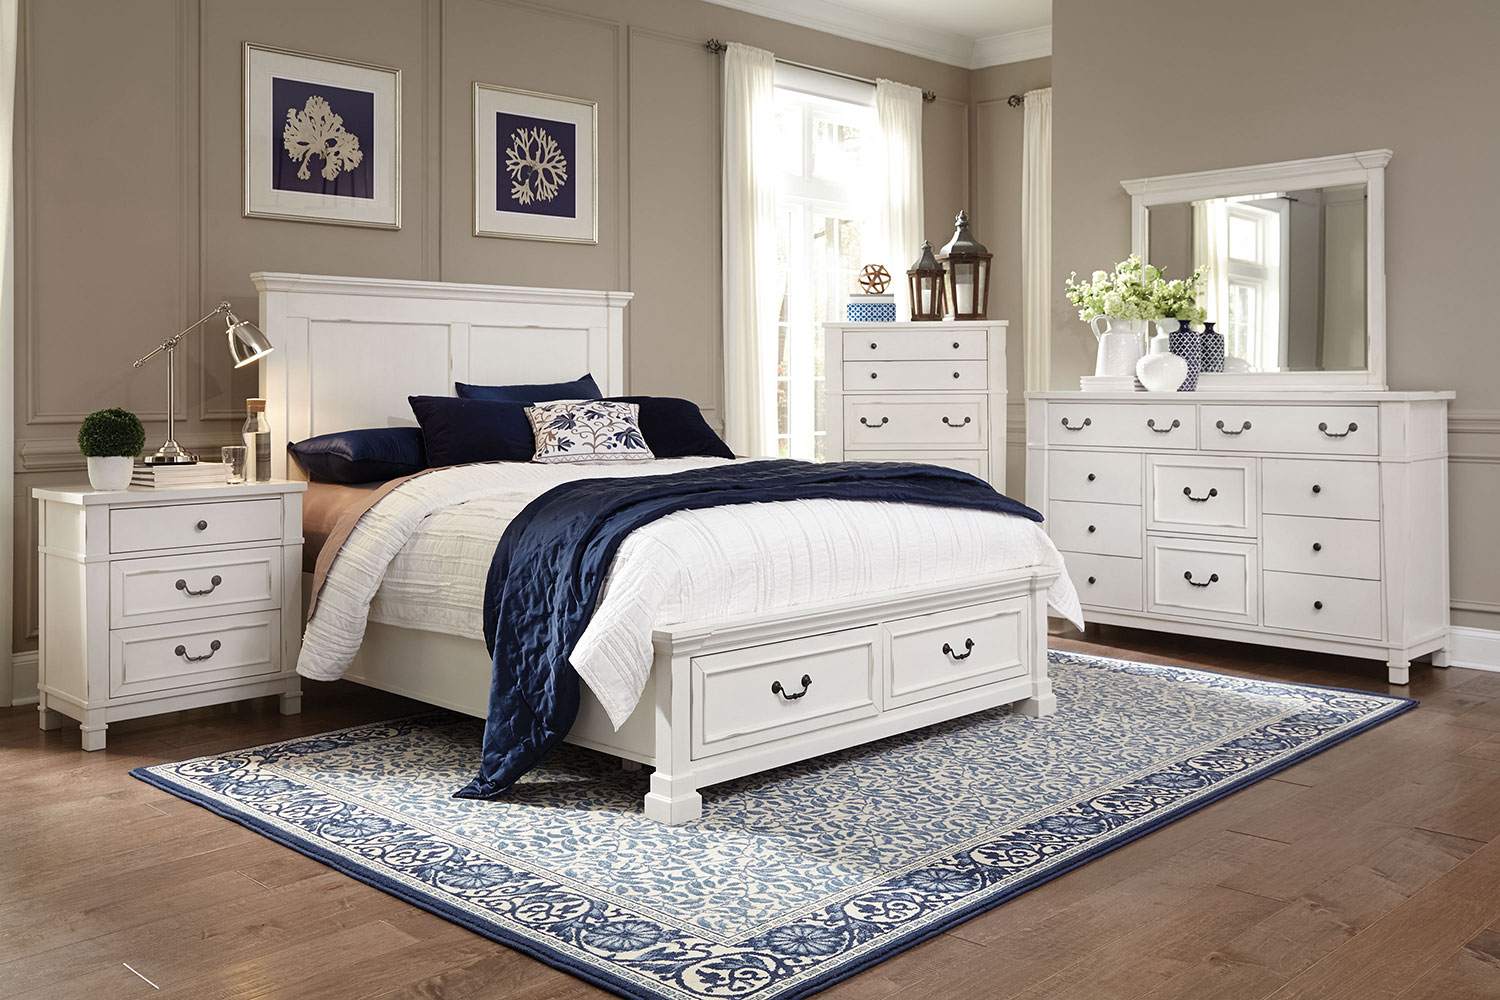 Taryn 4-Piece Queen Storage Bedroom Set - Antique White